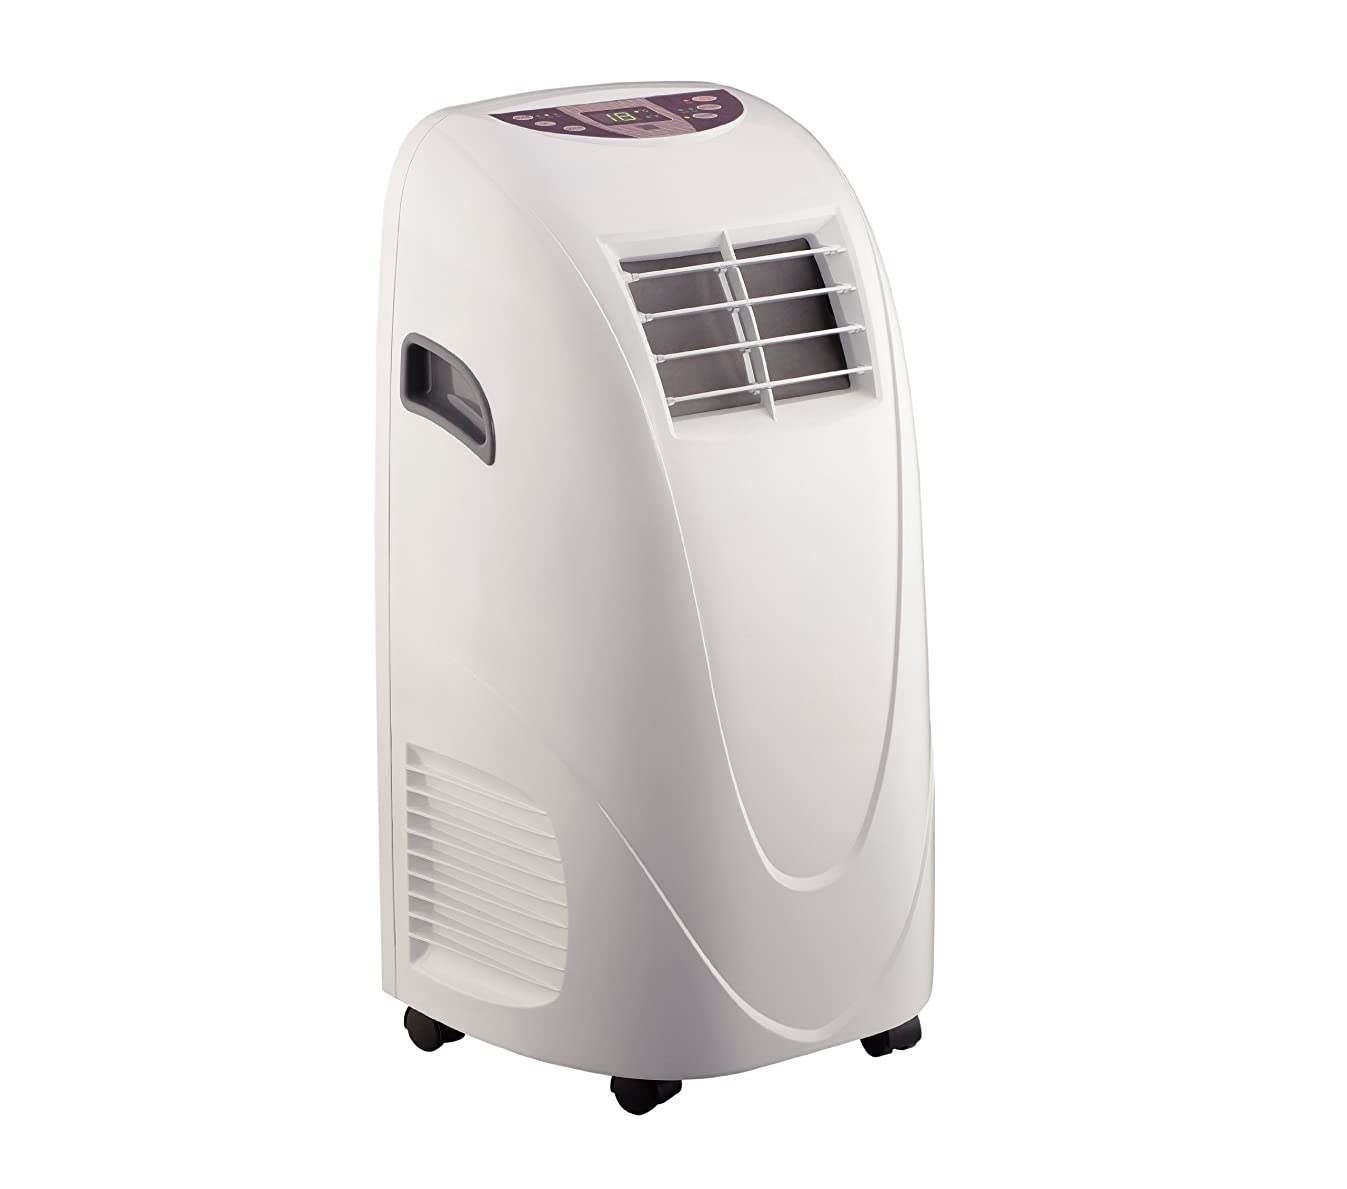 Global Air 10,000 BTU Portable Air Conditioner Cooling /Fan with Remote Control in White